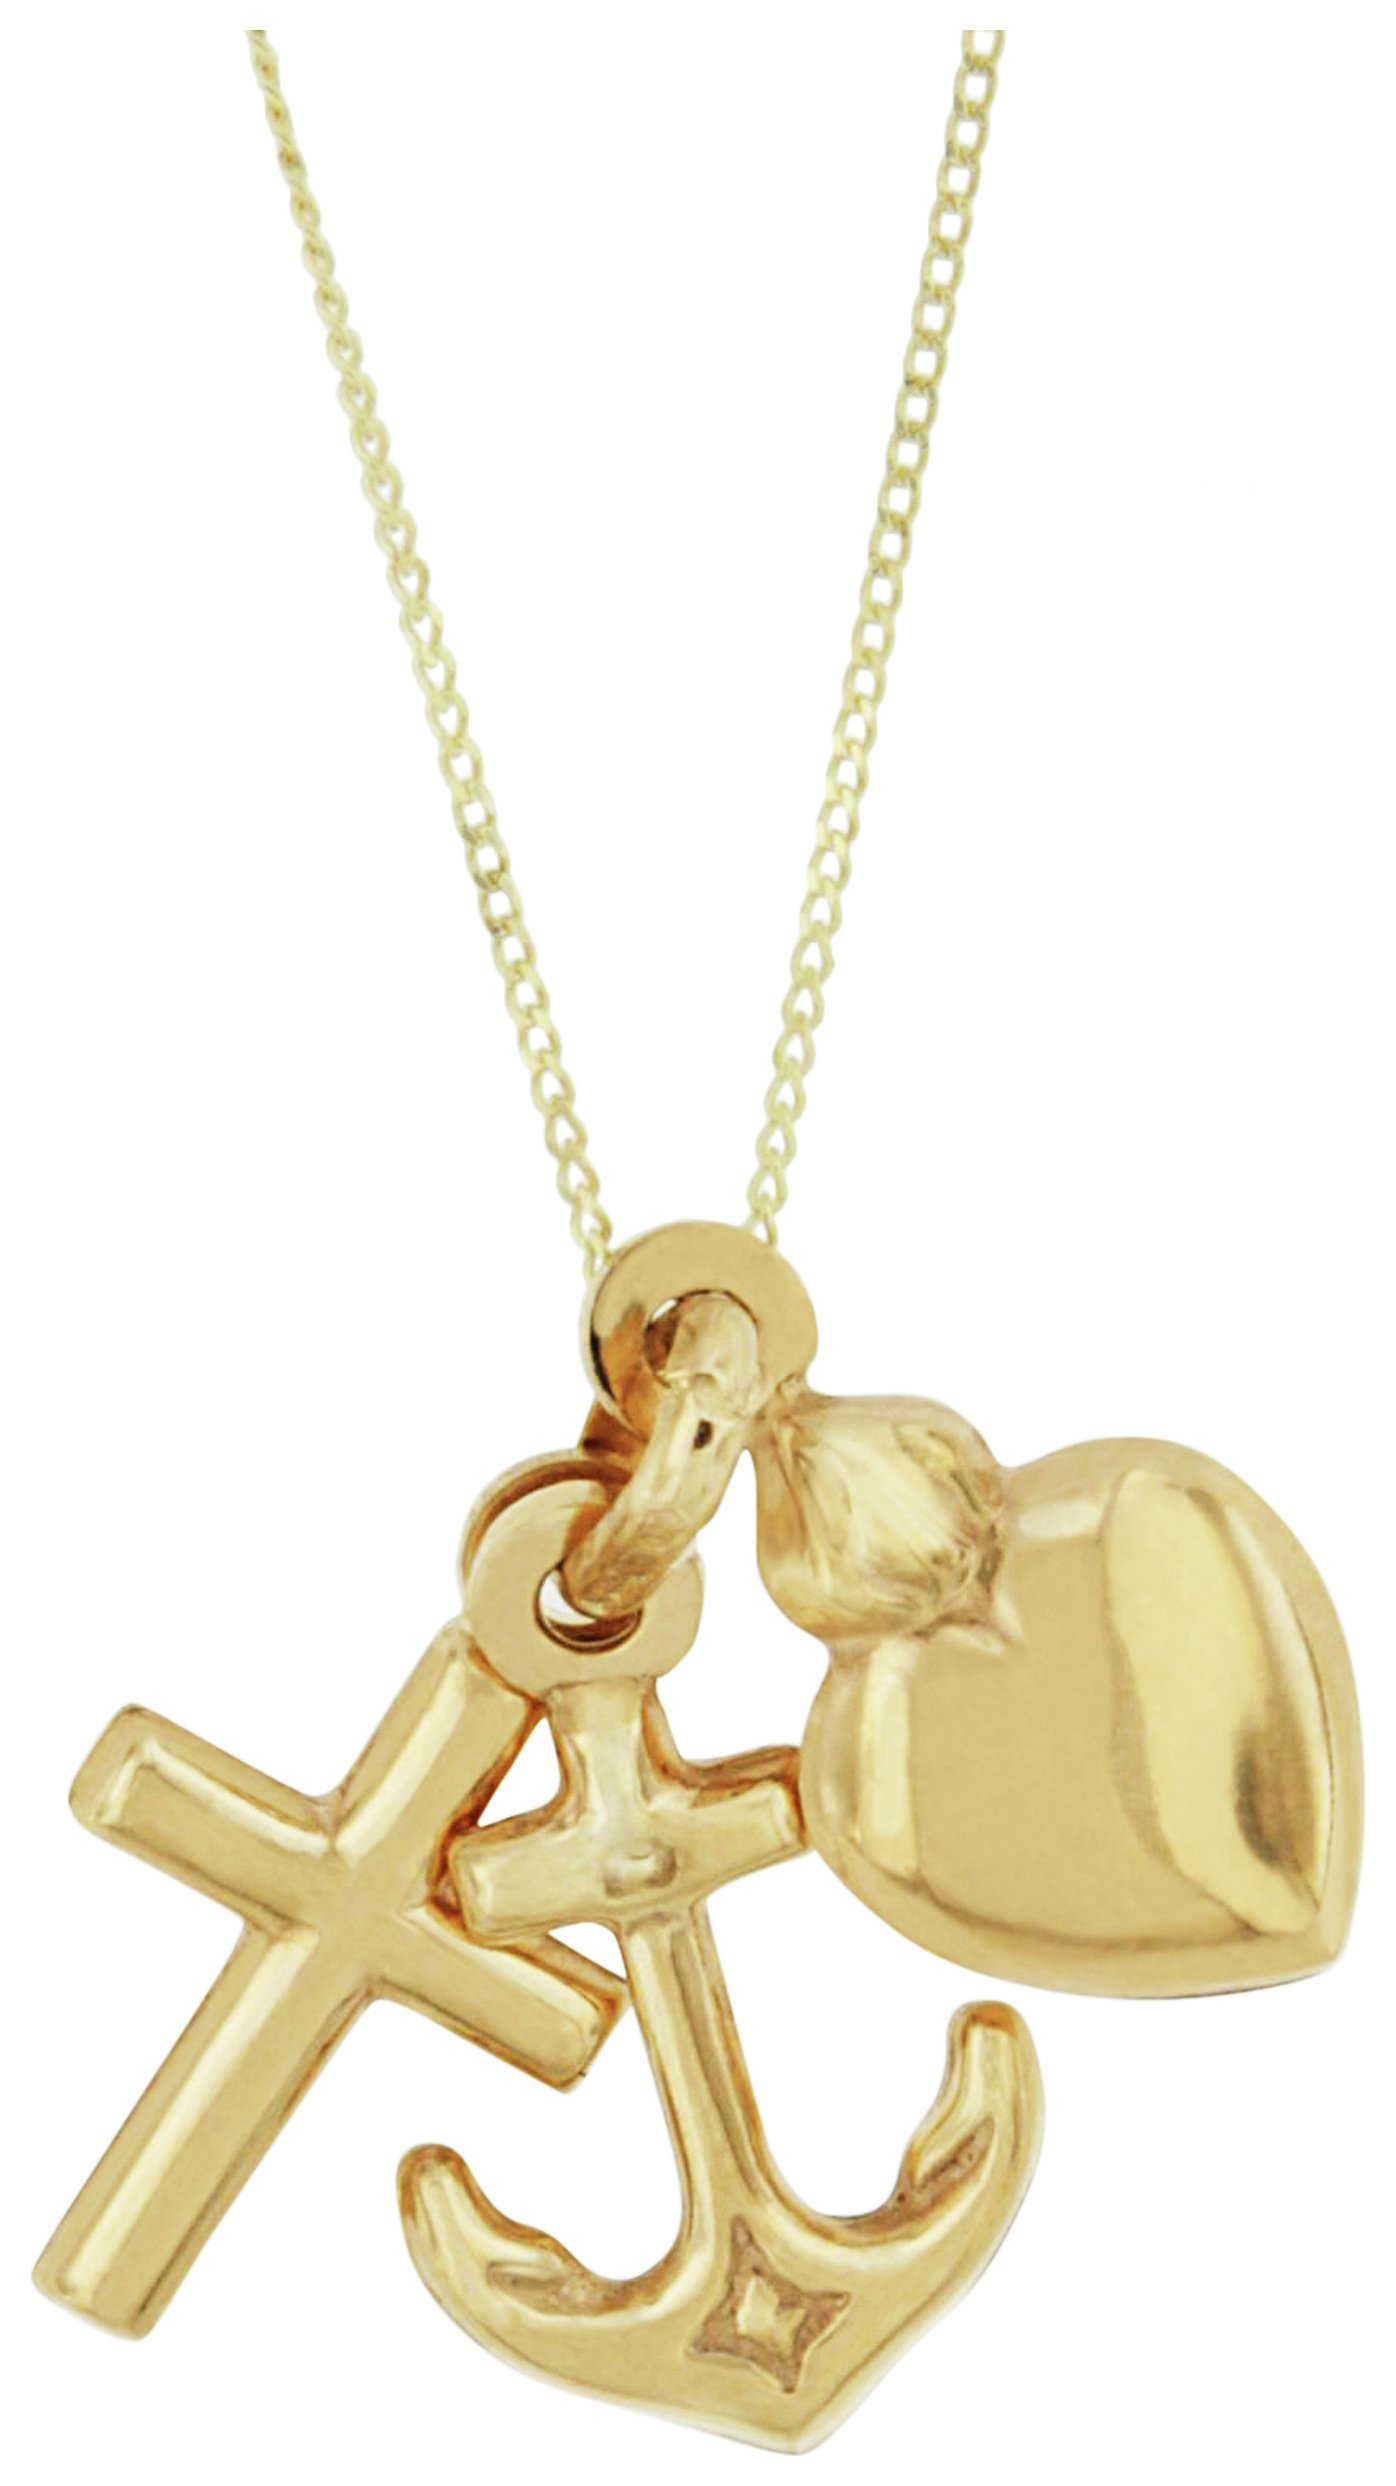 Image of Bracci - 9 Carat Gold - Heart, Anchor and Cross Solid Look Pendant.